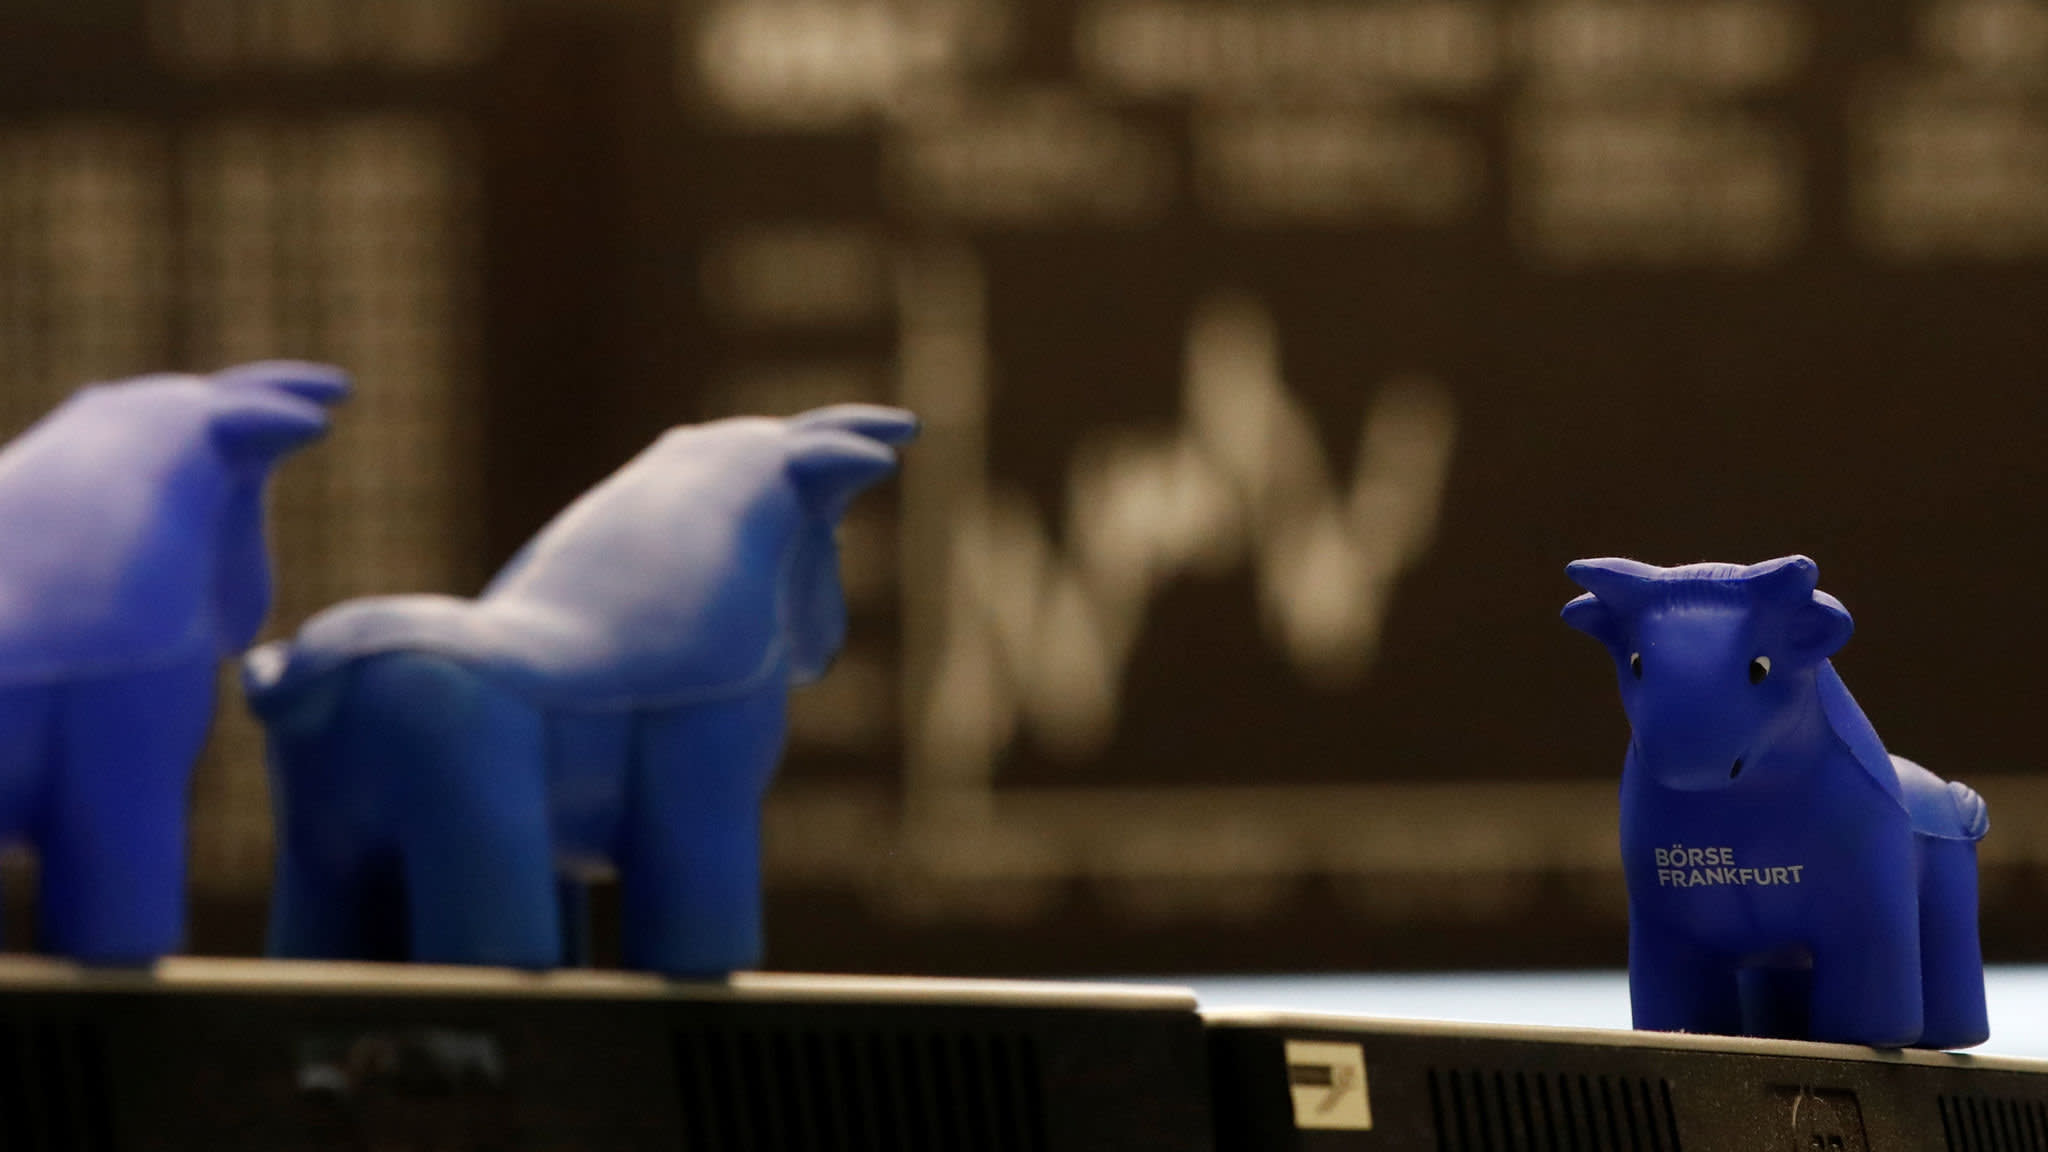 Germans reluctantly switch to stock market in search of returns | Financial Times